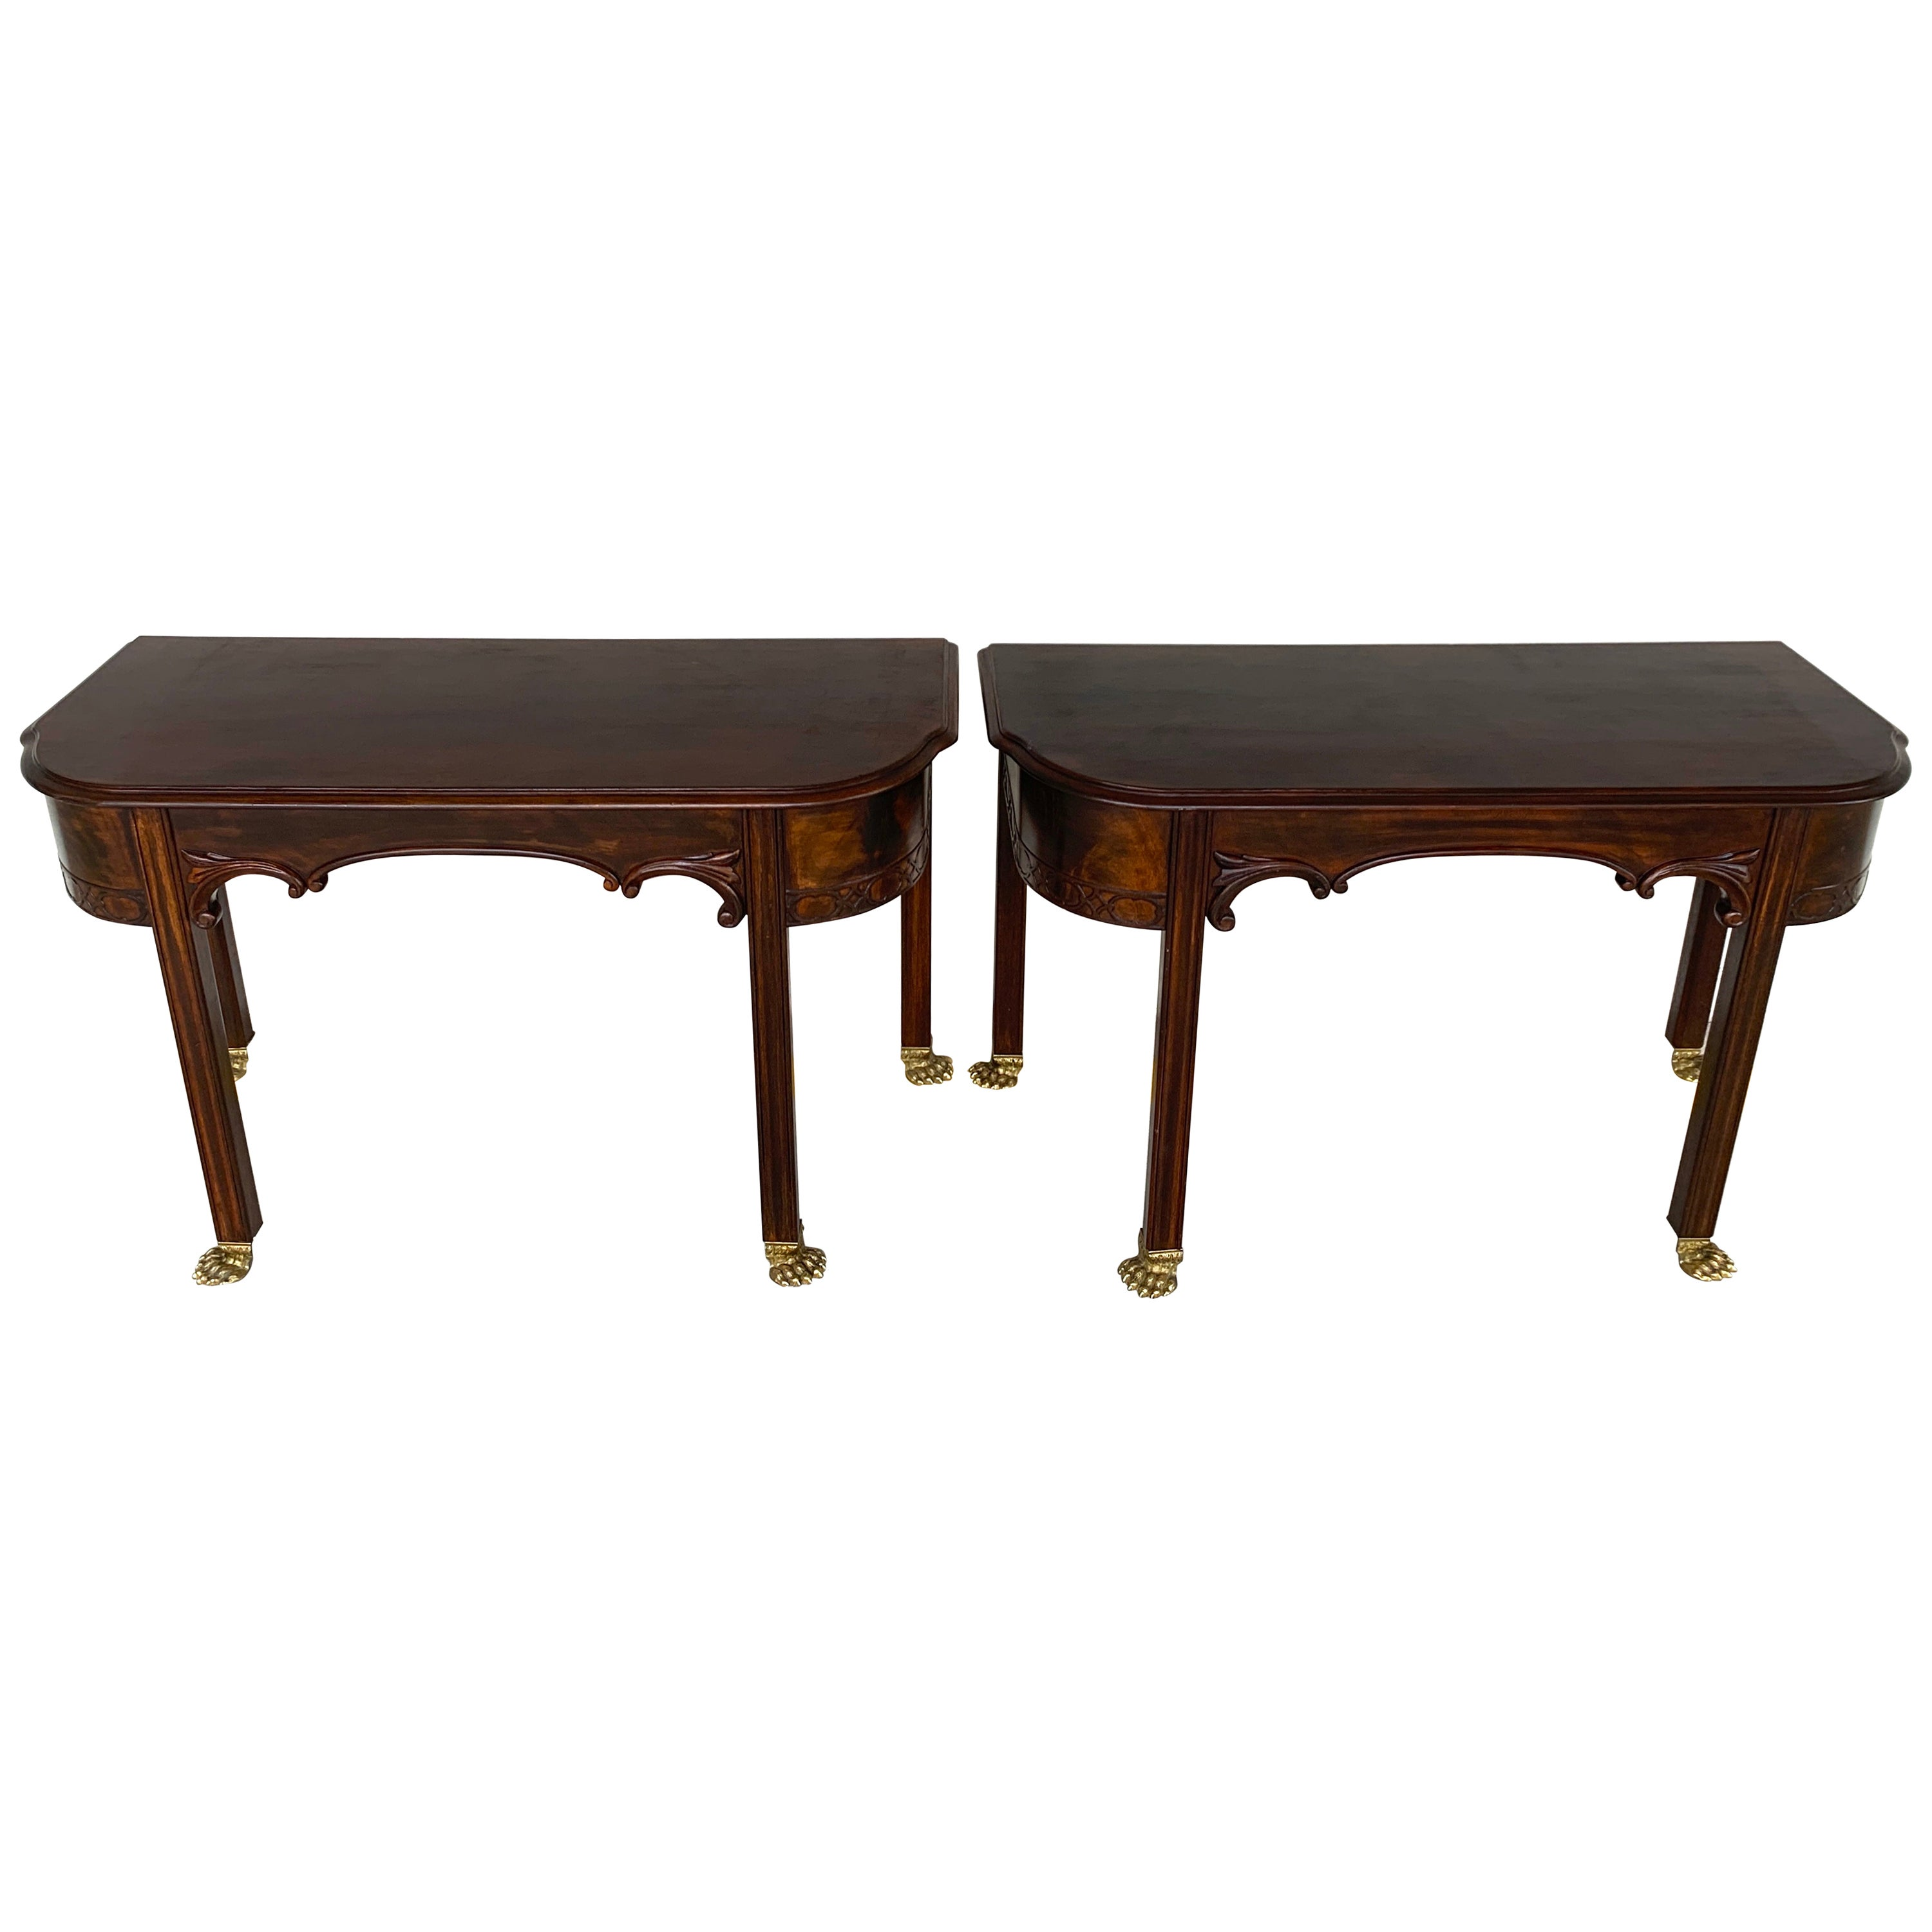 Pair of English Regency Brass Footed Console Tables